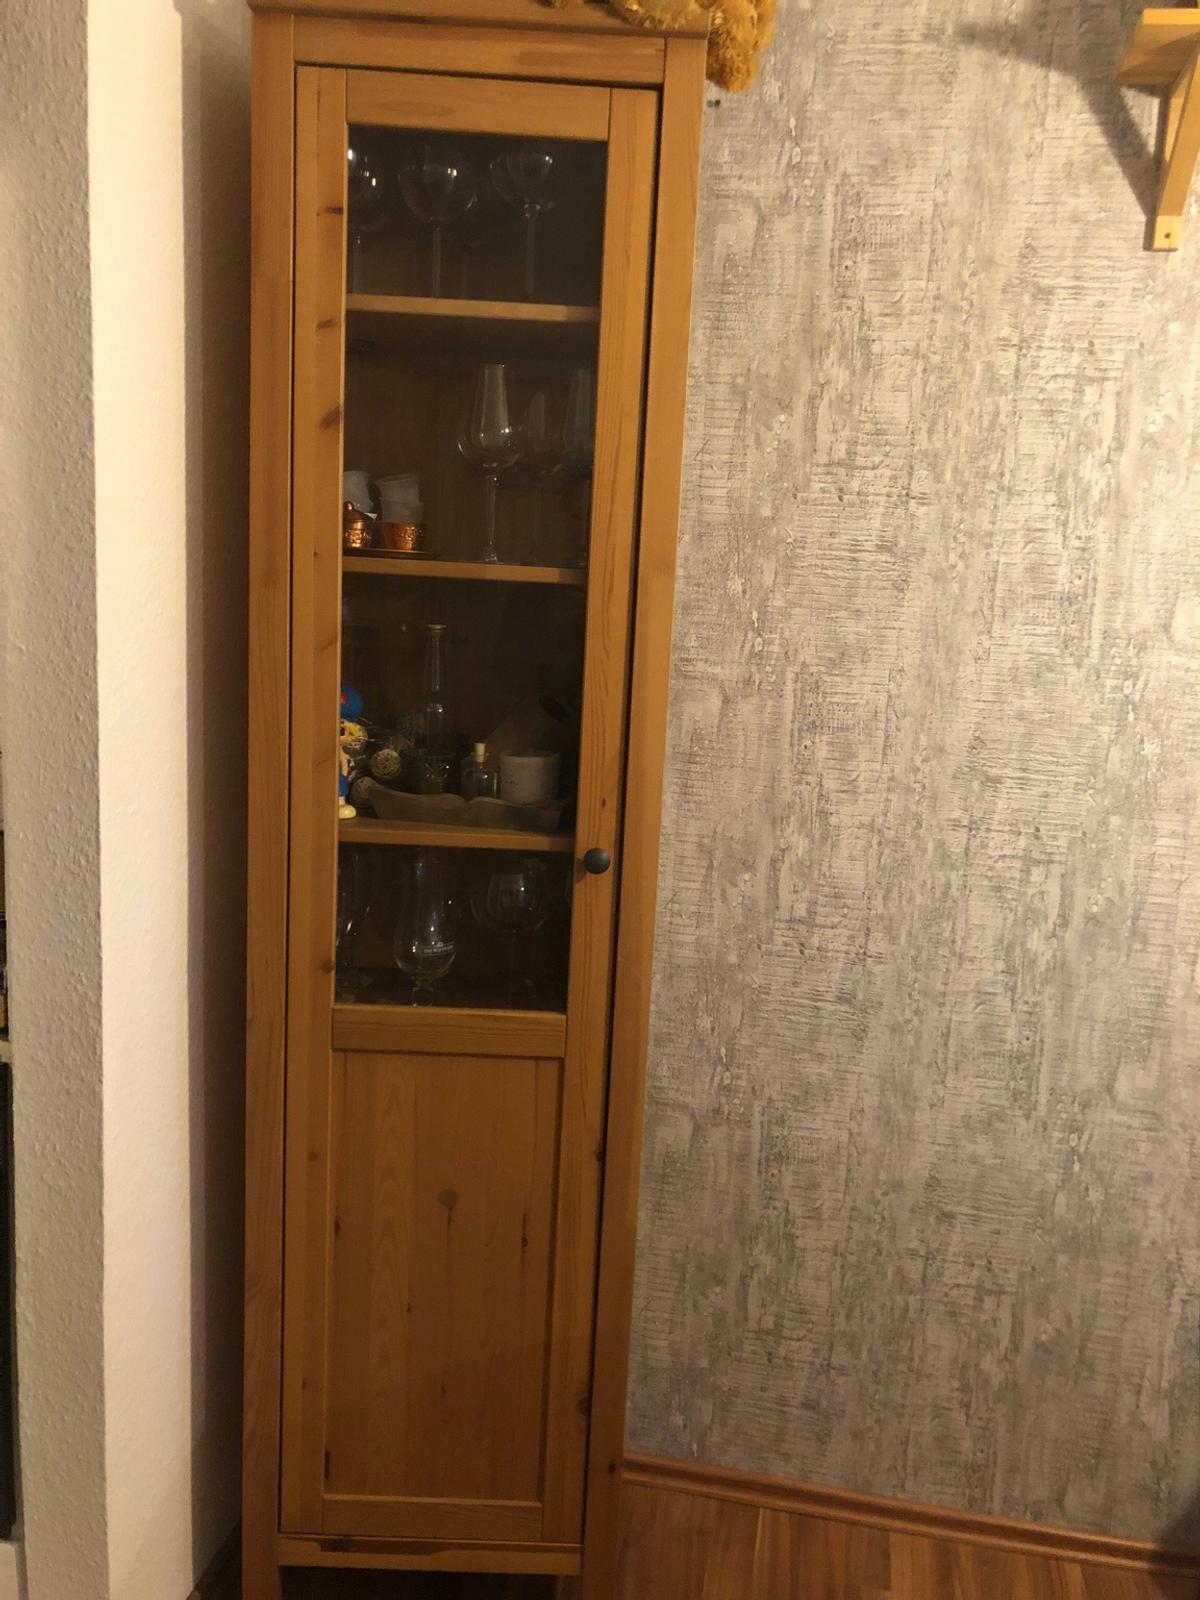 Hemnes Tv Bank Graubraun Hemnes Vitrine In 64584 Biebesheim For €100.00 For Sale